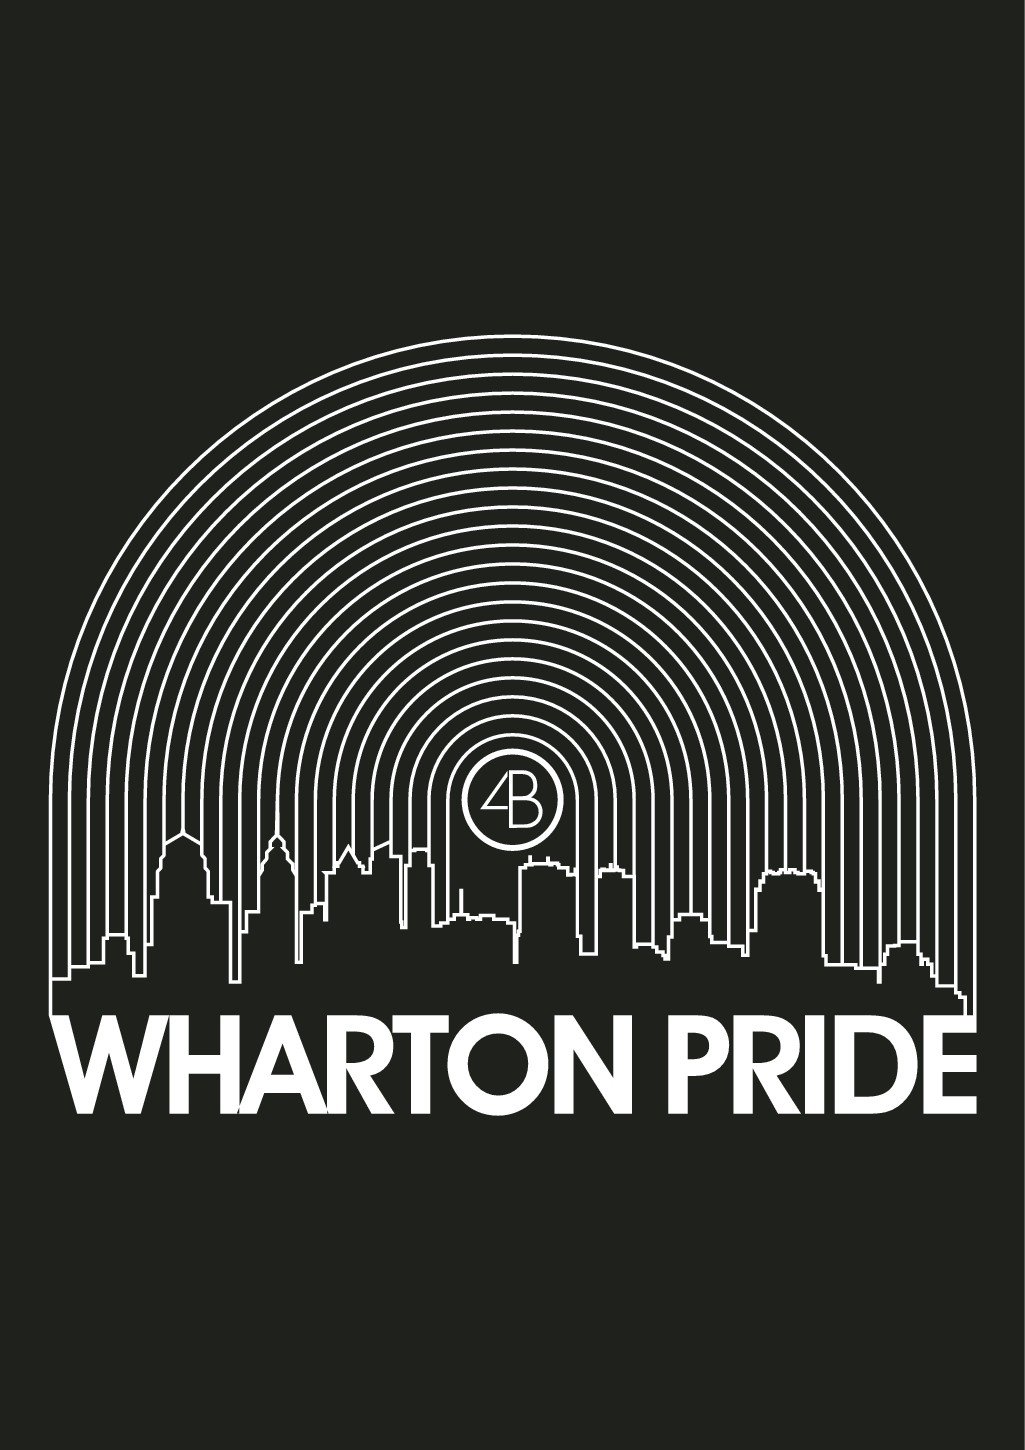 T-SHIRT DESIGNS FOR THE LARGEST BUSINESS SCHOOL LGBTQ CLUB IN THE WORLD